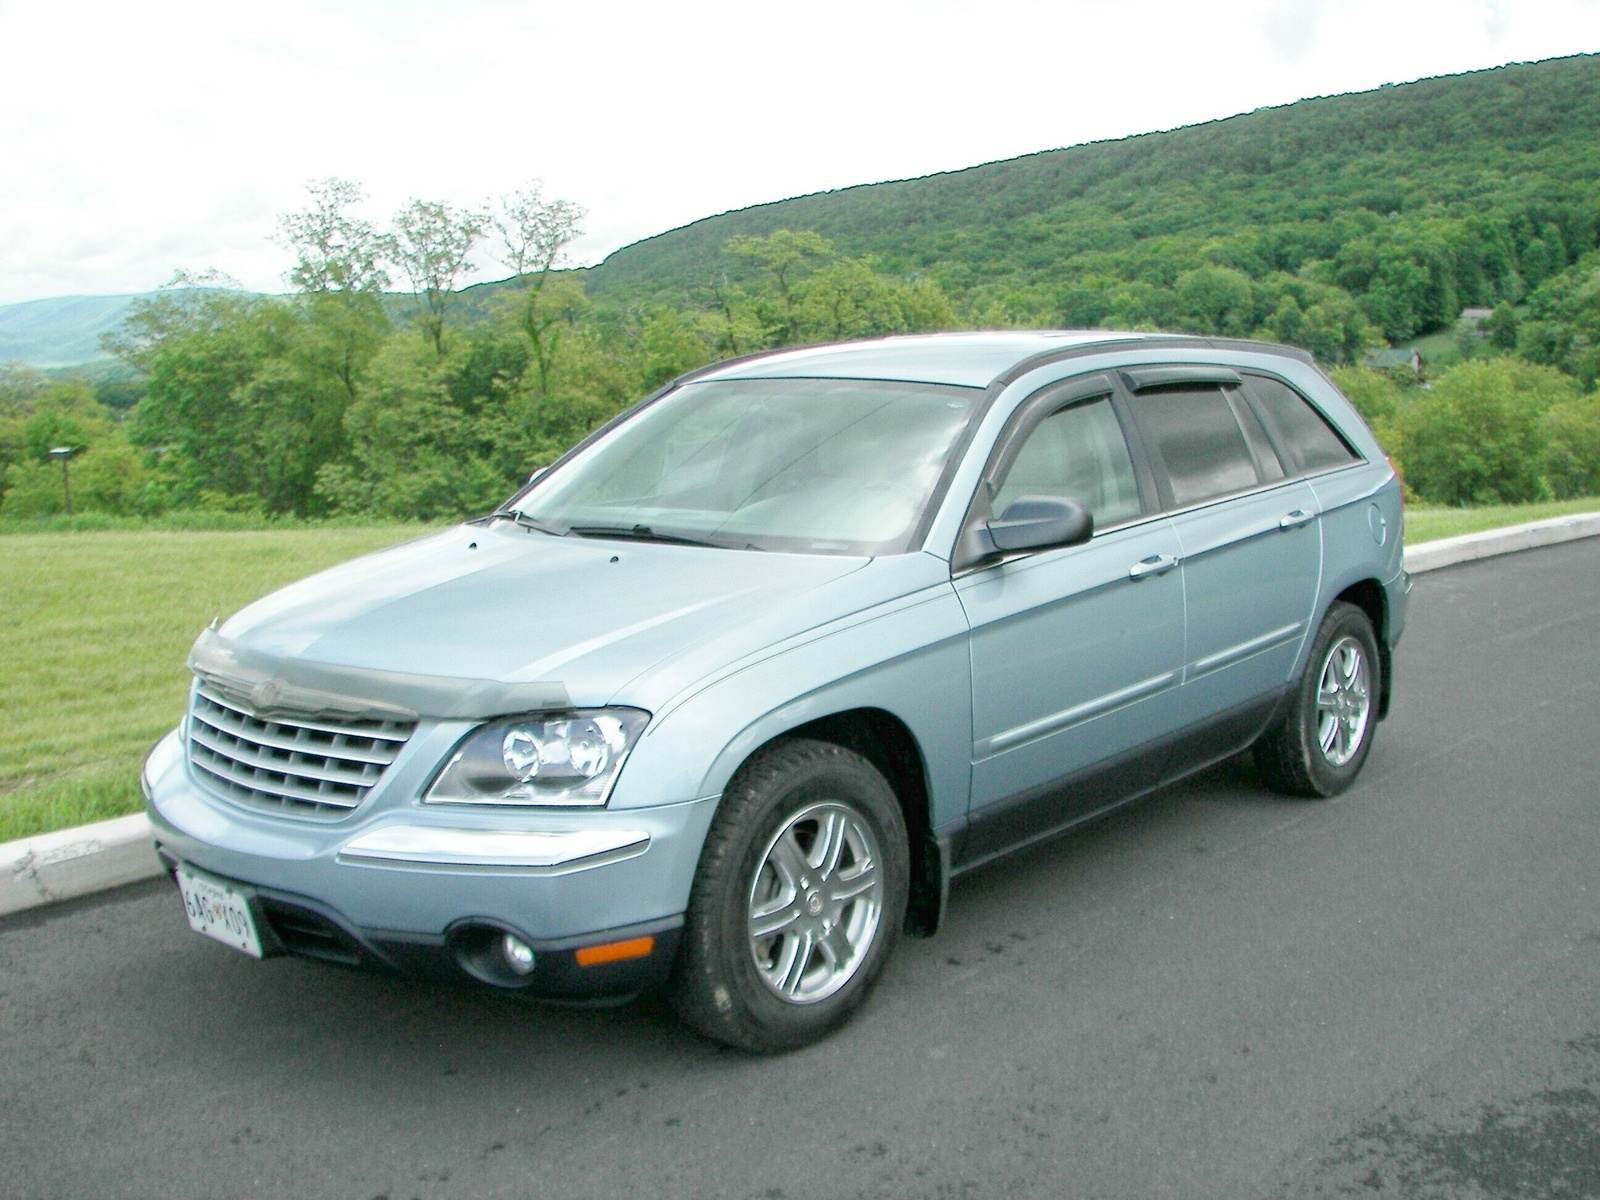 2004 chrysler pacifica base picture exterior. Cars Review. Best American Auto & Cars Review